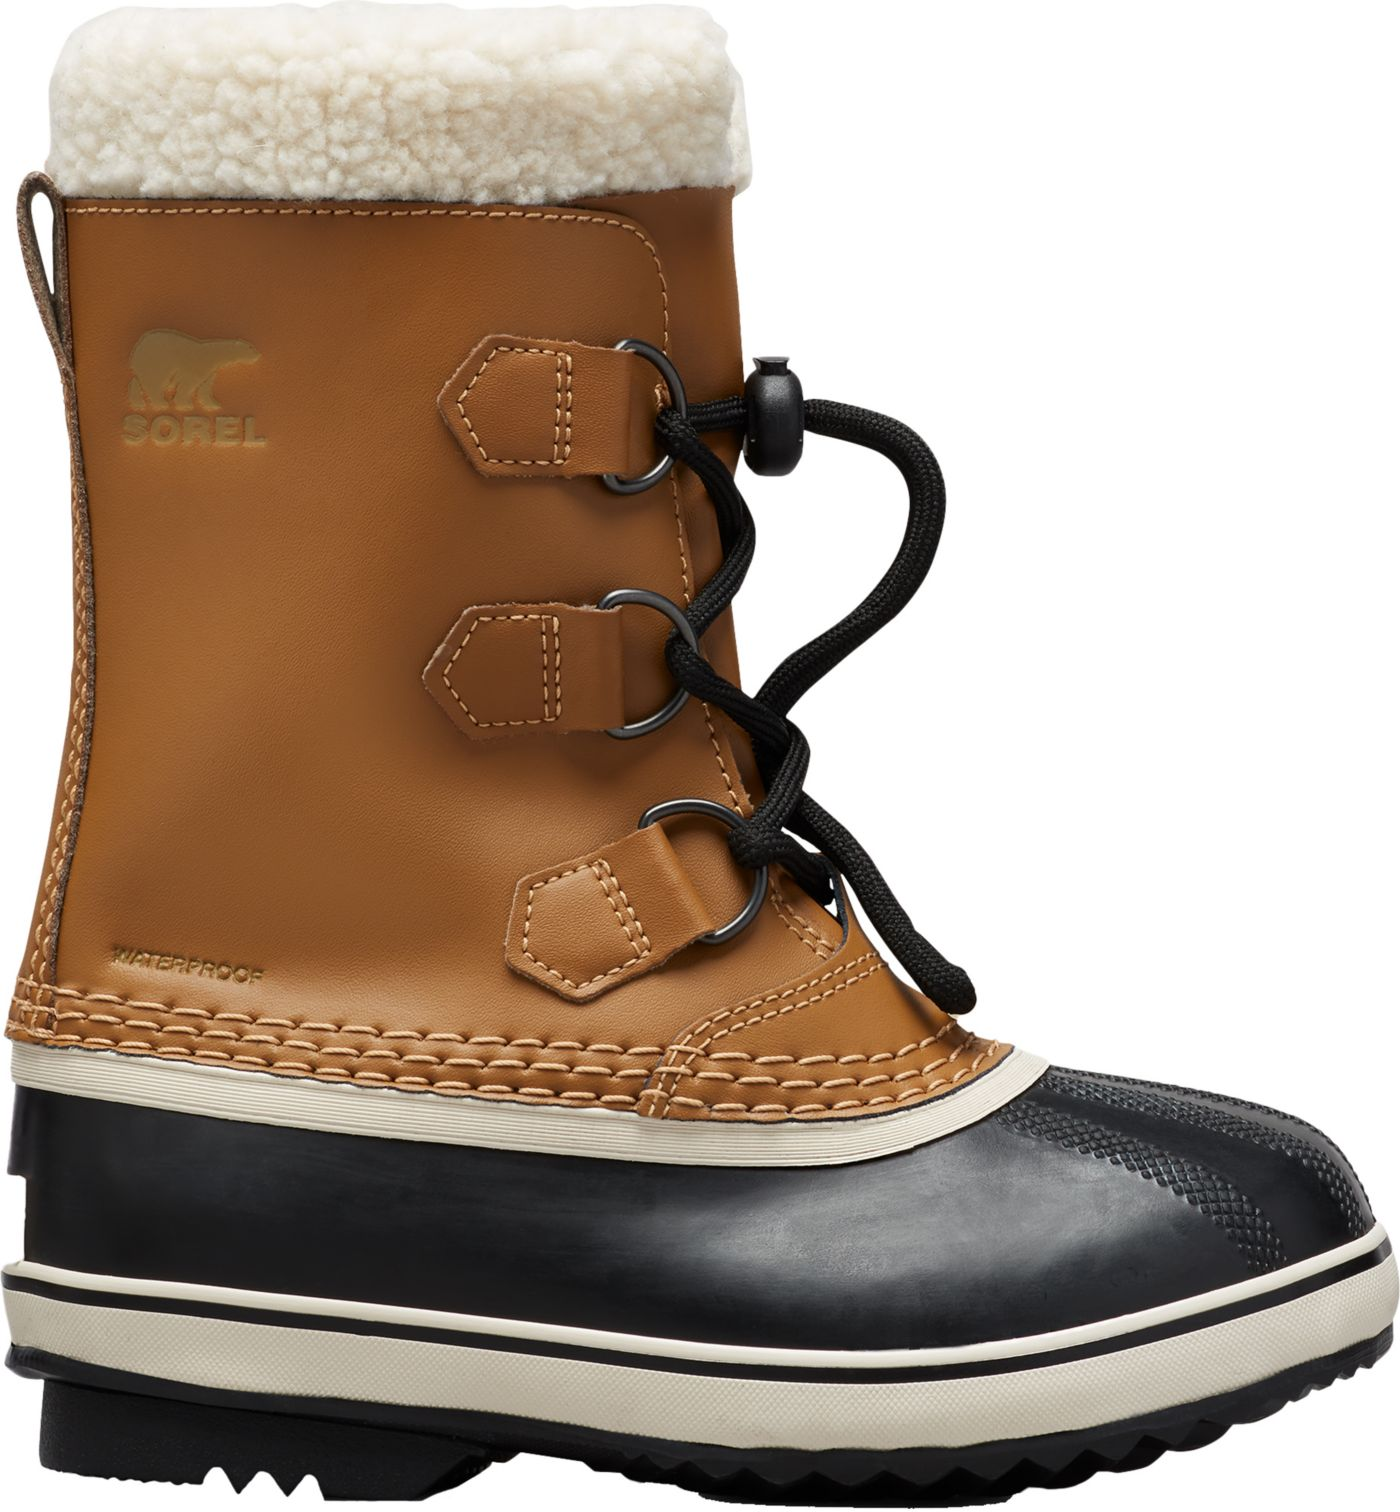 SOREL Kids' Yoot Pac TP Insulated Waterproof Winter Boots